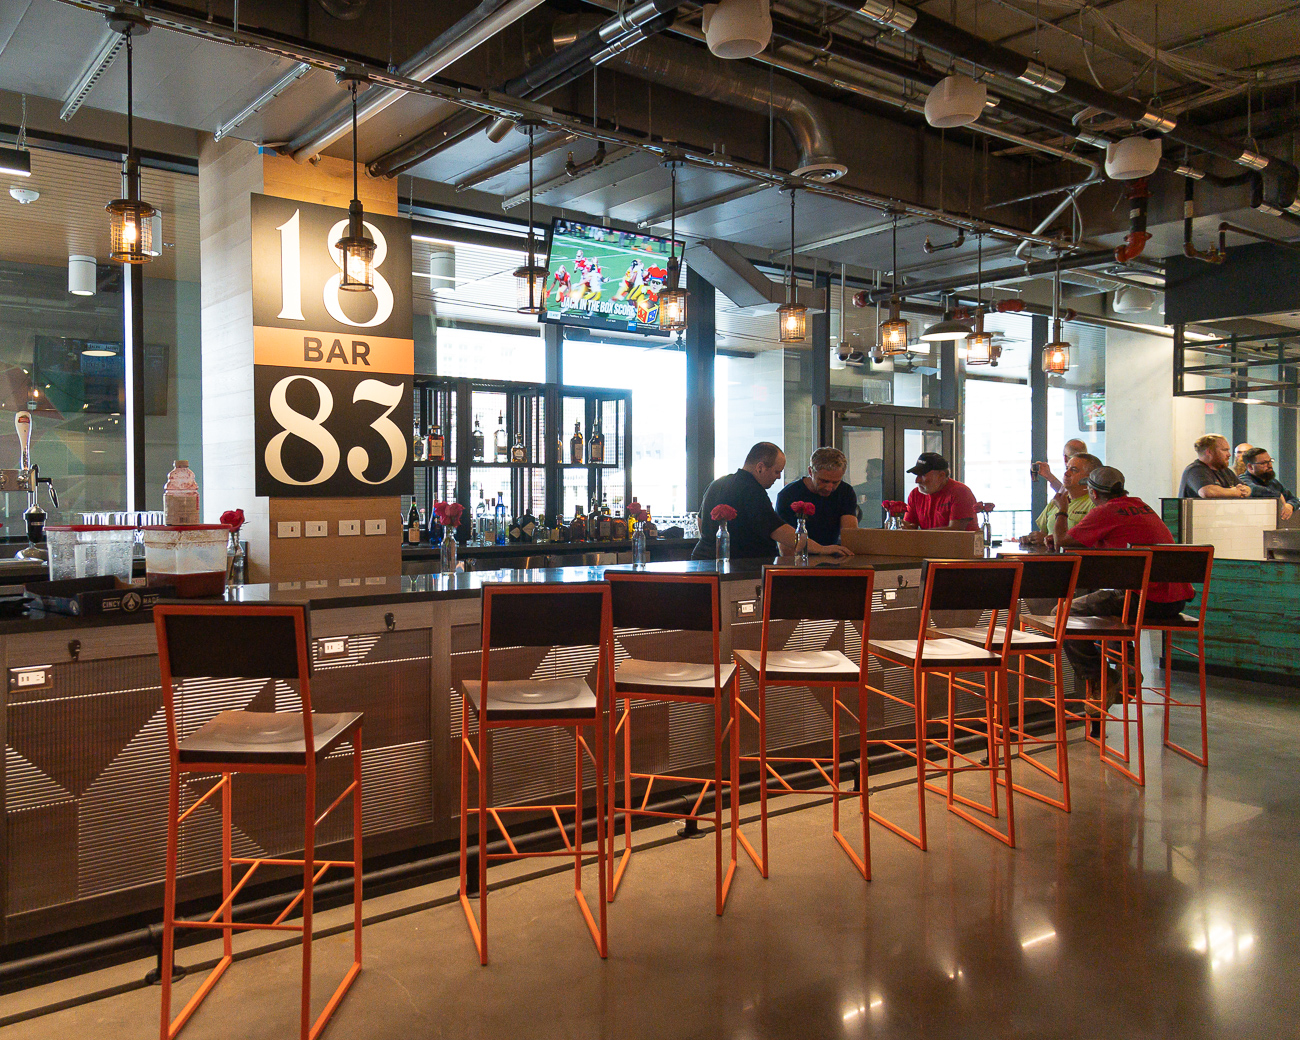 On the second level customers will find multiple local restaurants and a bar: Django Western Taco, Eli's BBQ, Queen City Whip, Dope Asian Street Food, and 1883 Cafe and Bar. The second floor is set up to comfortably host lunch and dinner, post-work happy hours, and more. It's meant as a space where people can go to hang out. Also on the second floor is plenty of seating both indoors and outside under a covered, second-story balcony. / Image: Phil Armstrong, Cincinnati Refined // Published: 9.24.19